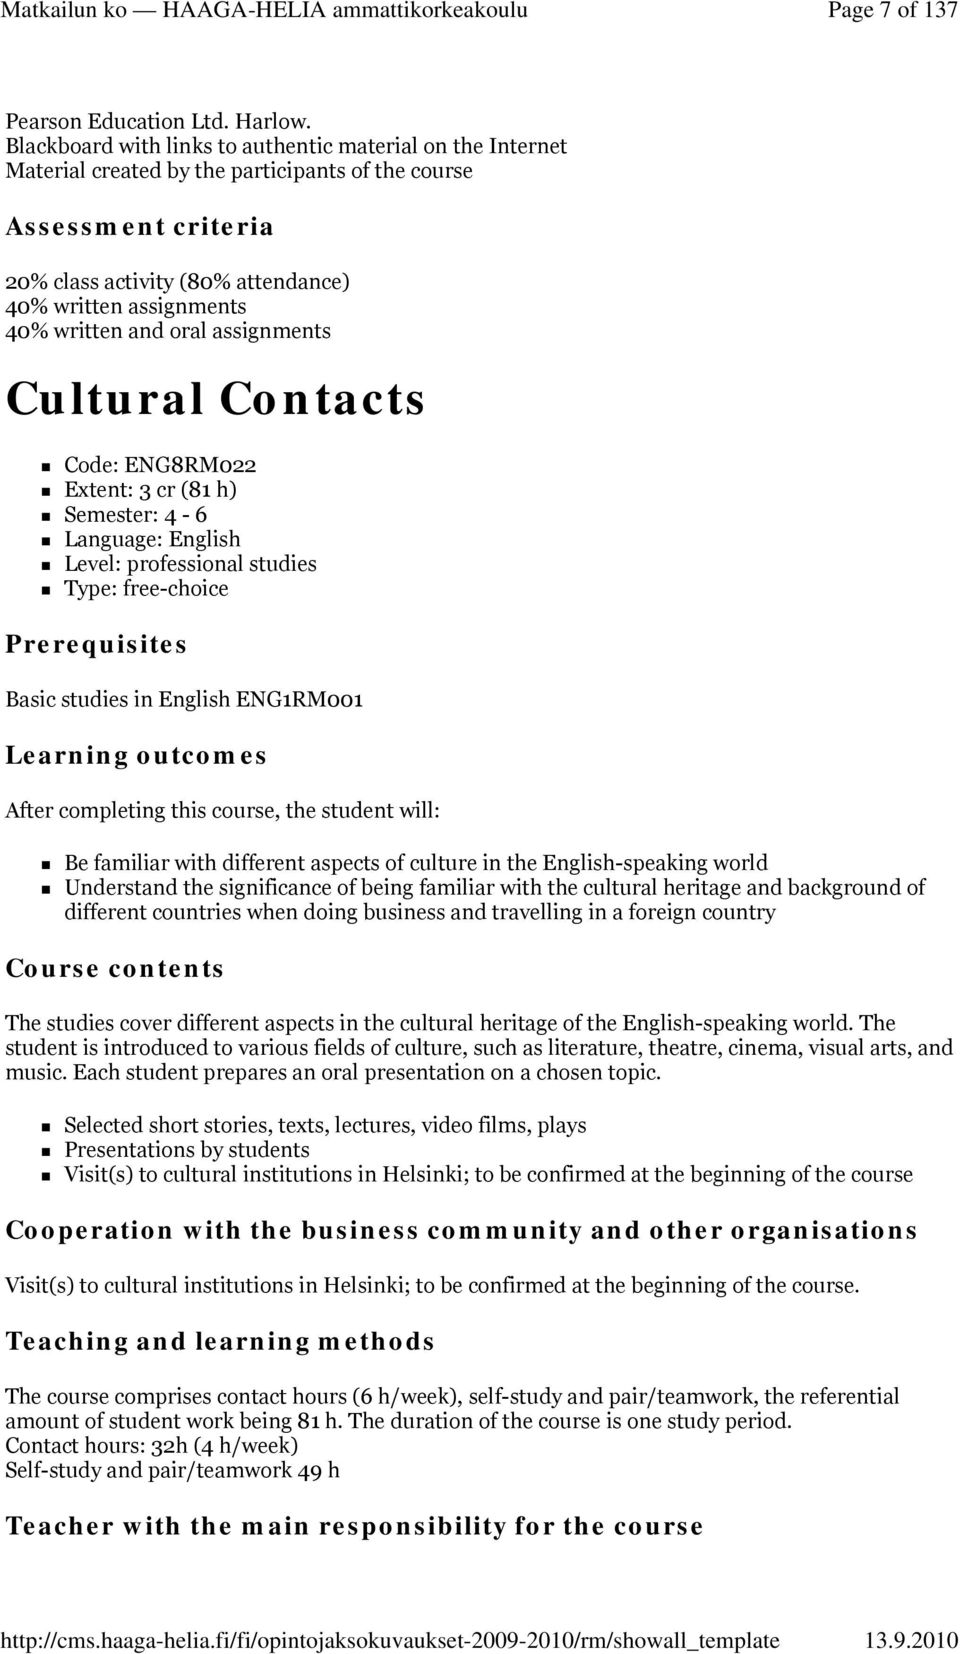 written and oral assignments Cultural Contacts Code: ENG8RM022 Extent: 3 cr (81 h) Semester: 4-6 Language: English Level: professional studies Type: free-choice Prerequisites Basic studies in English